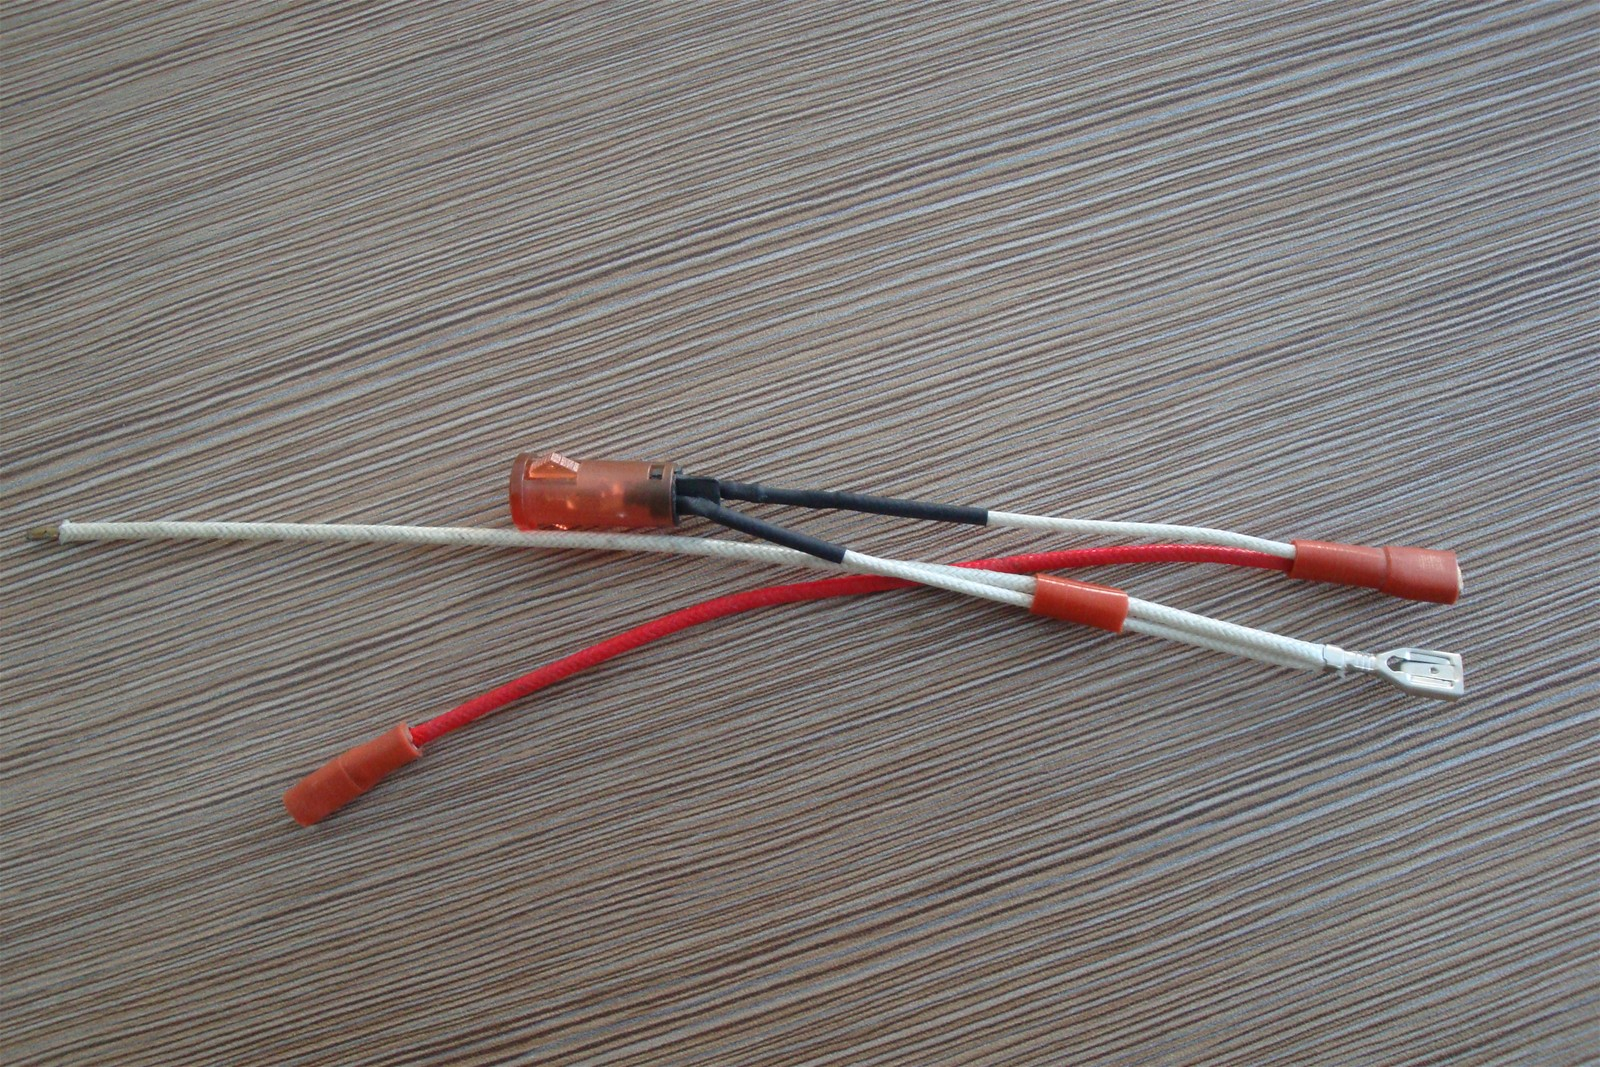 Magnesium Oxide Cable : Indicated lamp with neon bulb purchasing souring agent